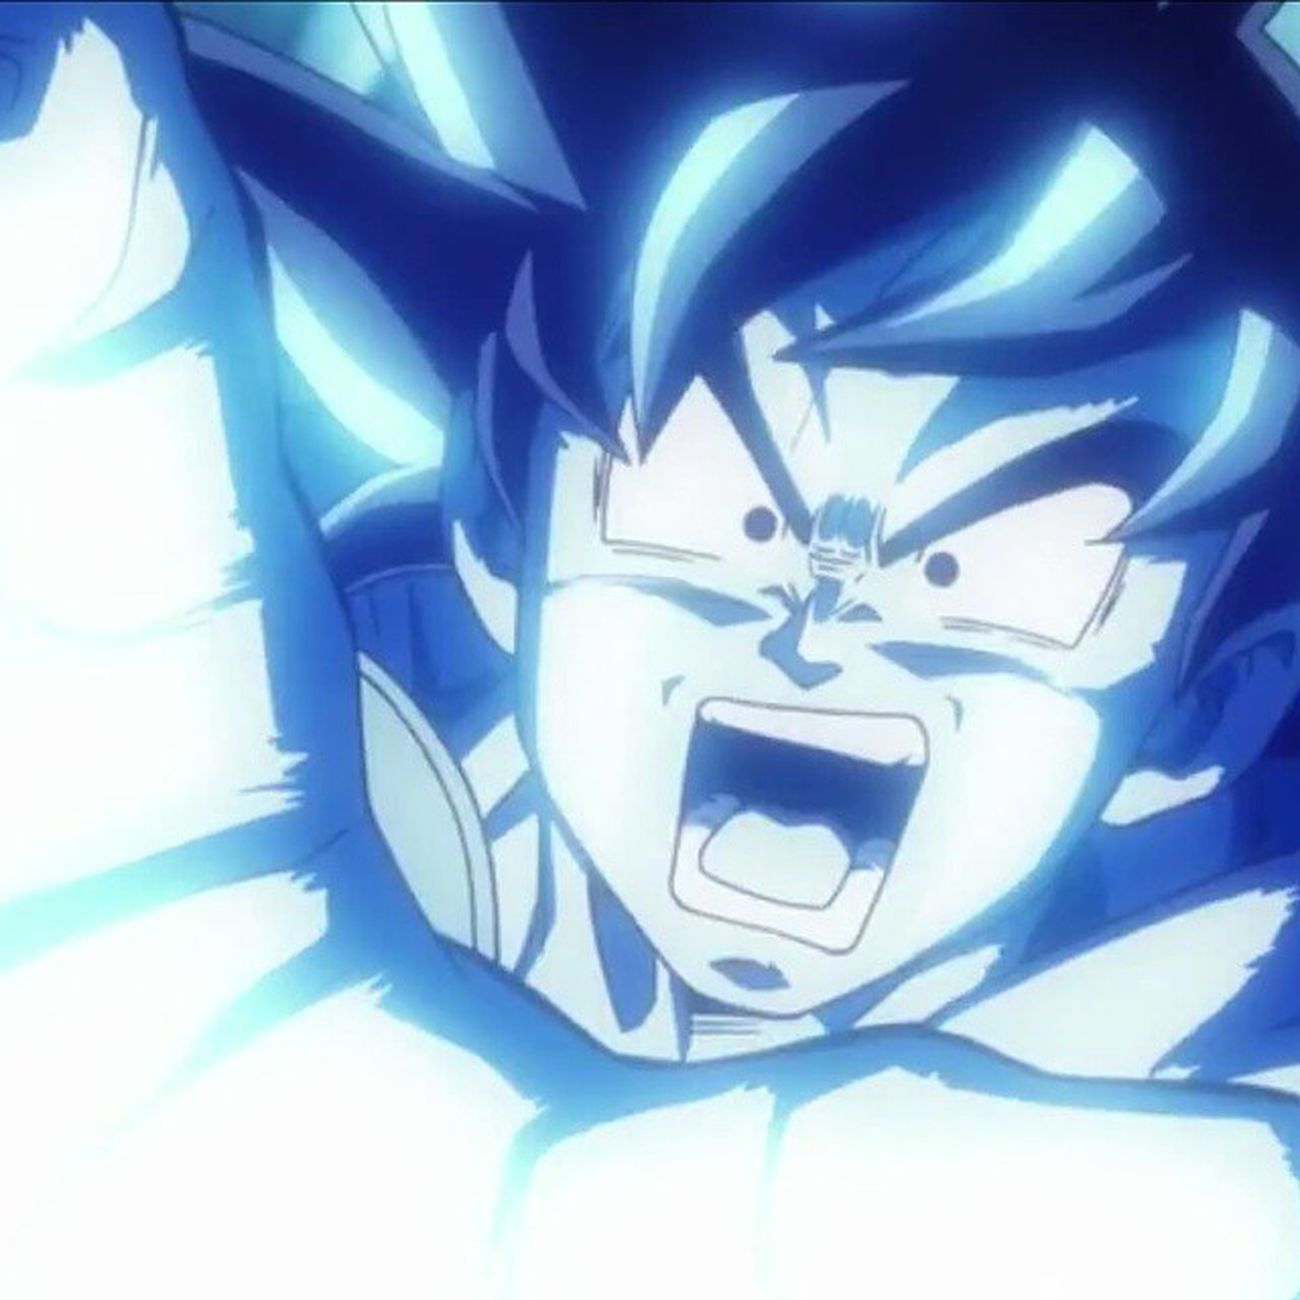 Kamehameha!!! Dragon Ball Z: Ressurection of F premiers tomorrow in Japan. Dragonballz RessurectionofF FukkatsunoF Kamehameha .